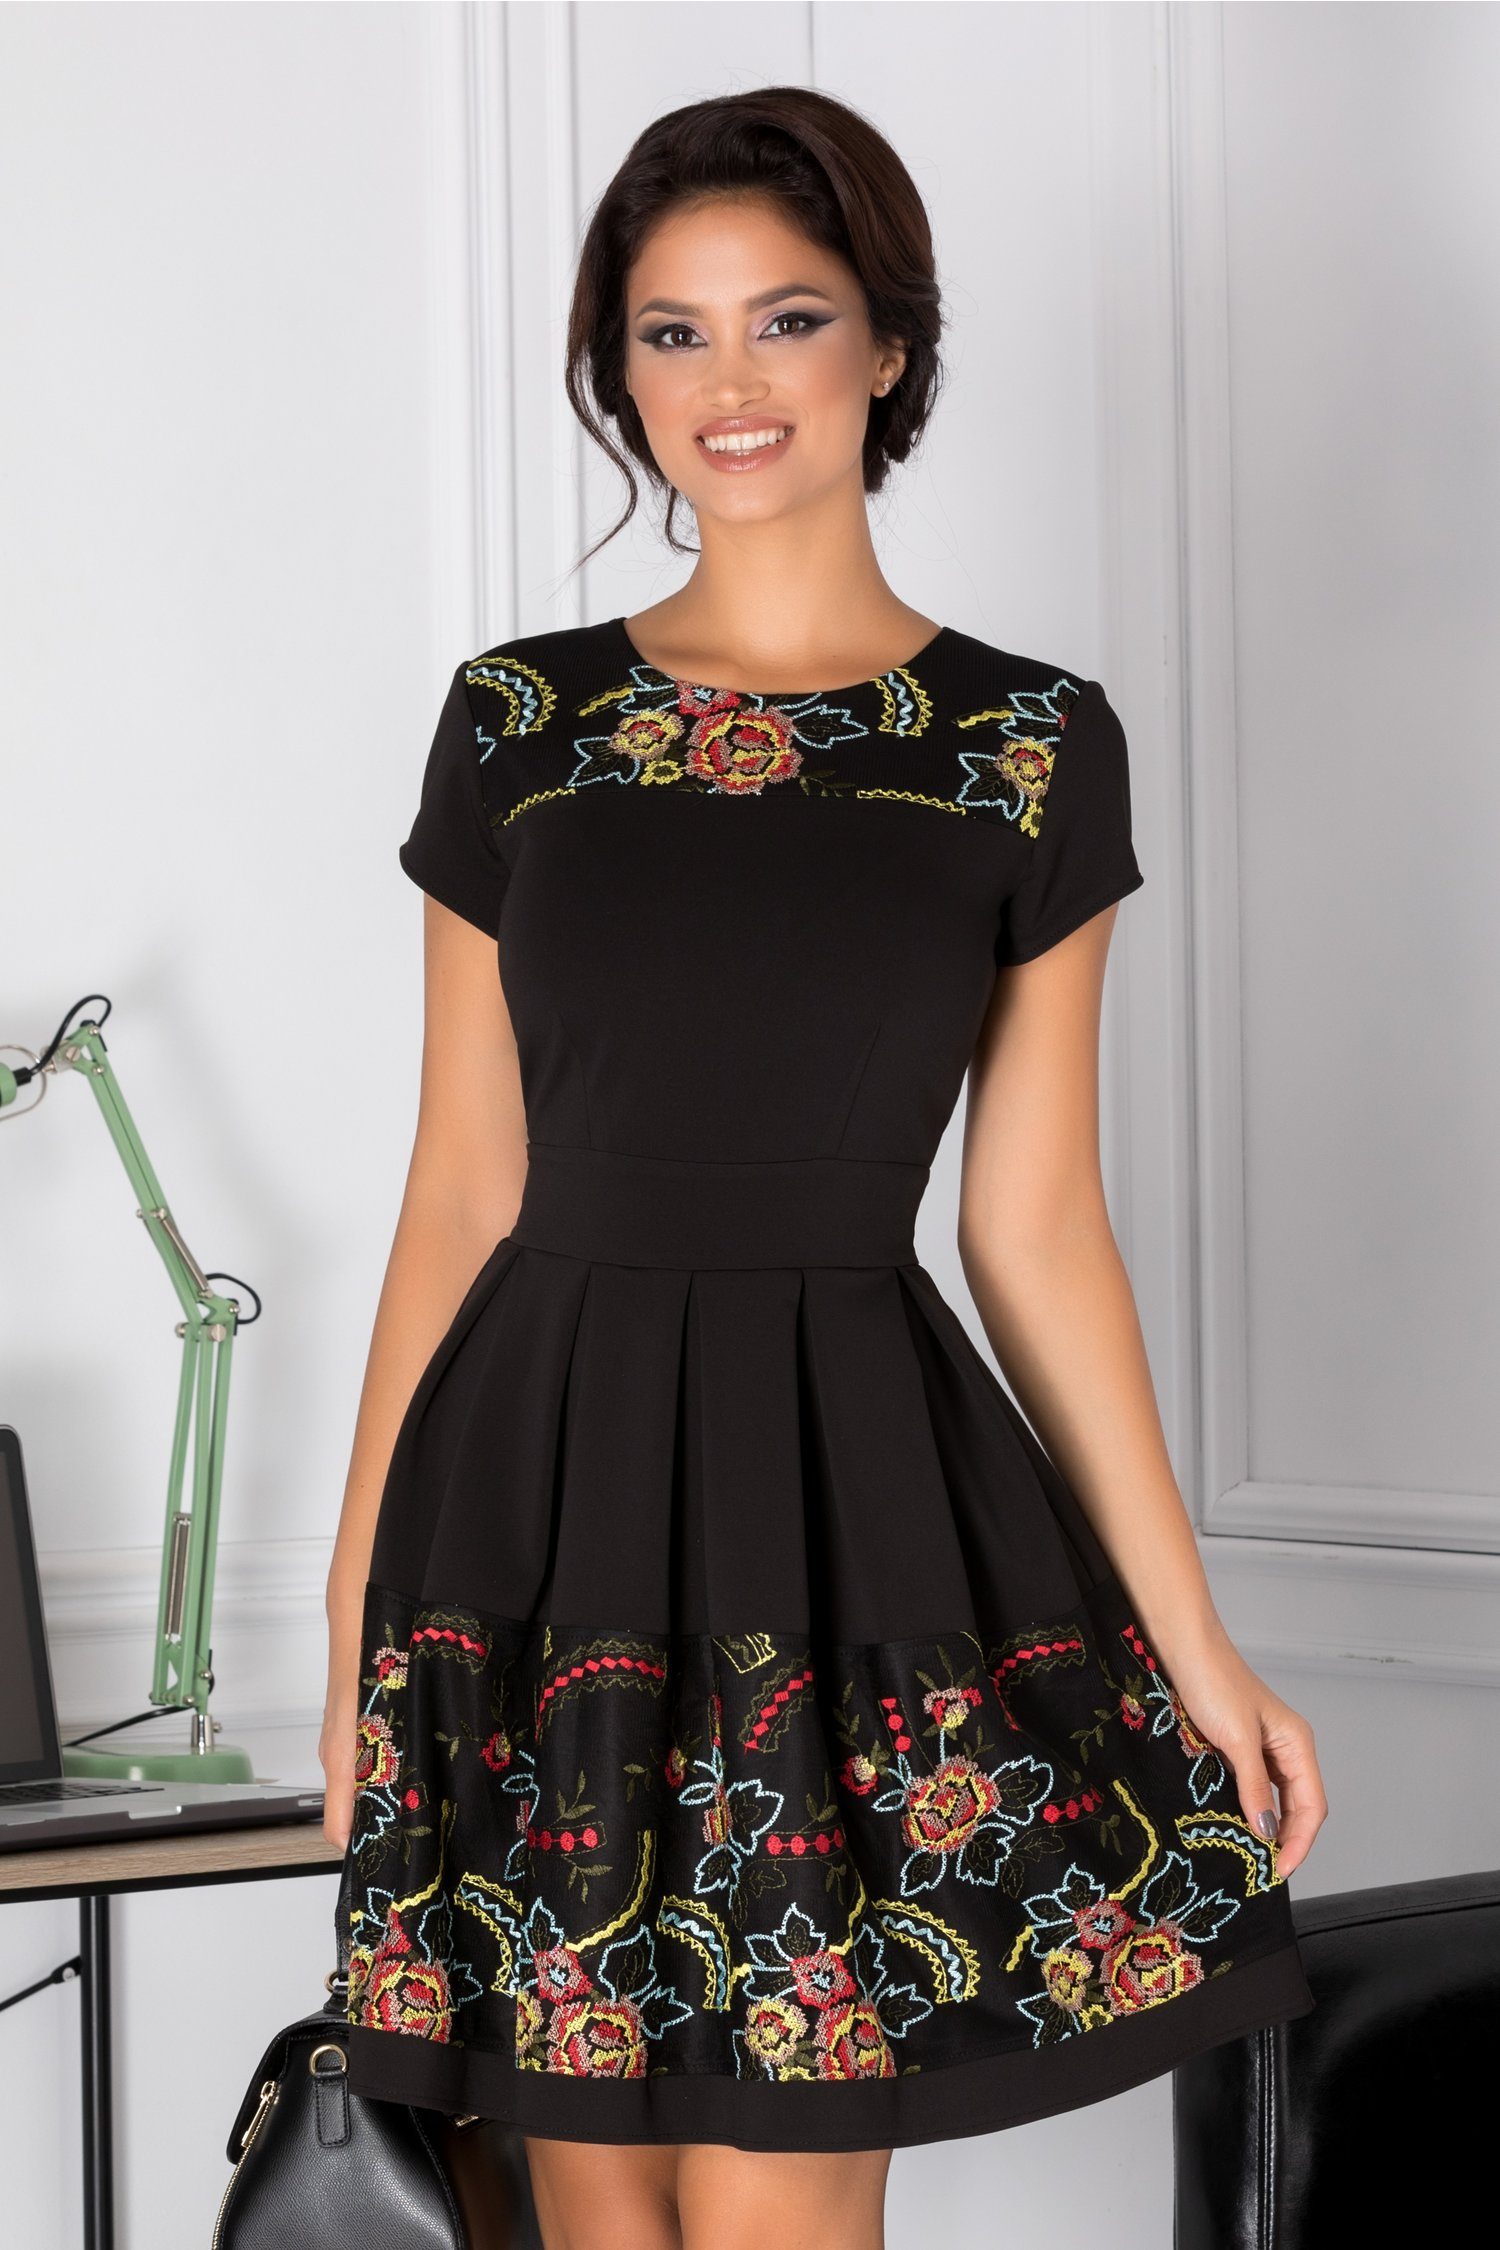 Rochie Angy neagra cu broderie traditionala pastelata